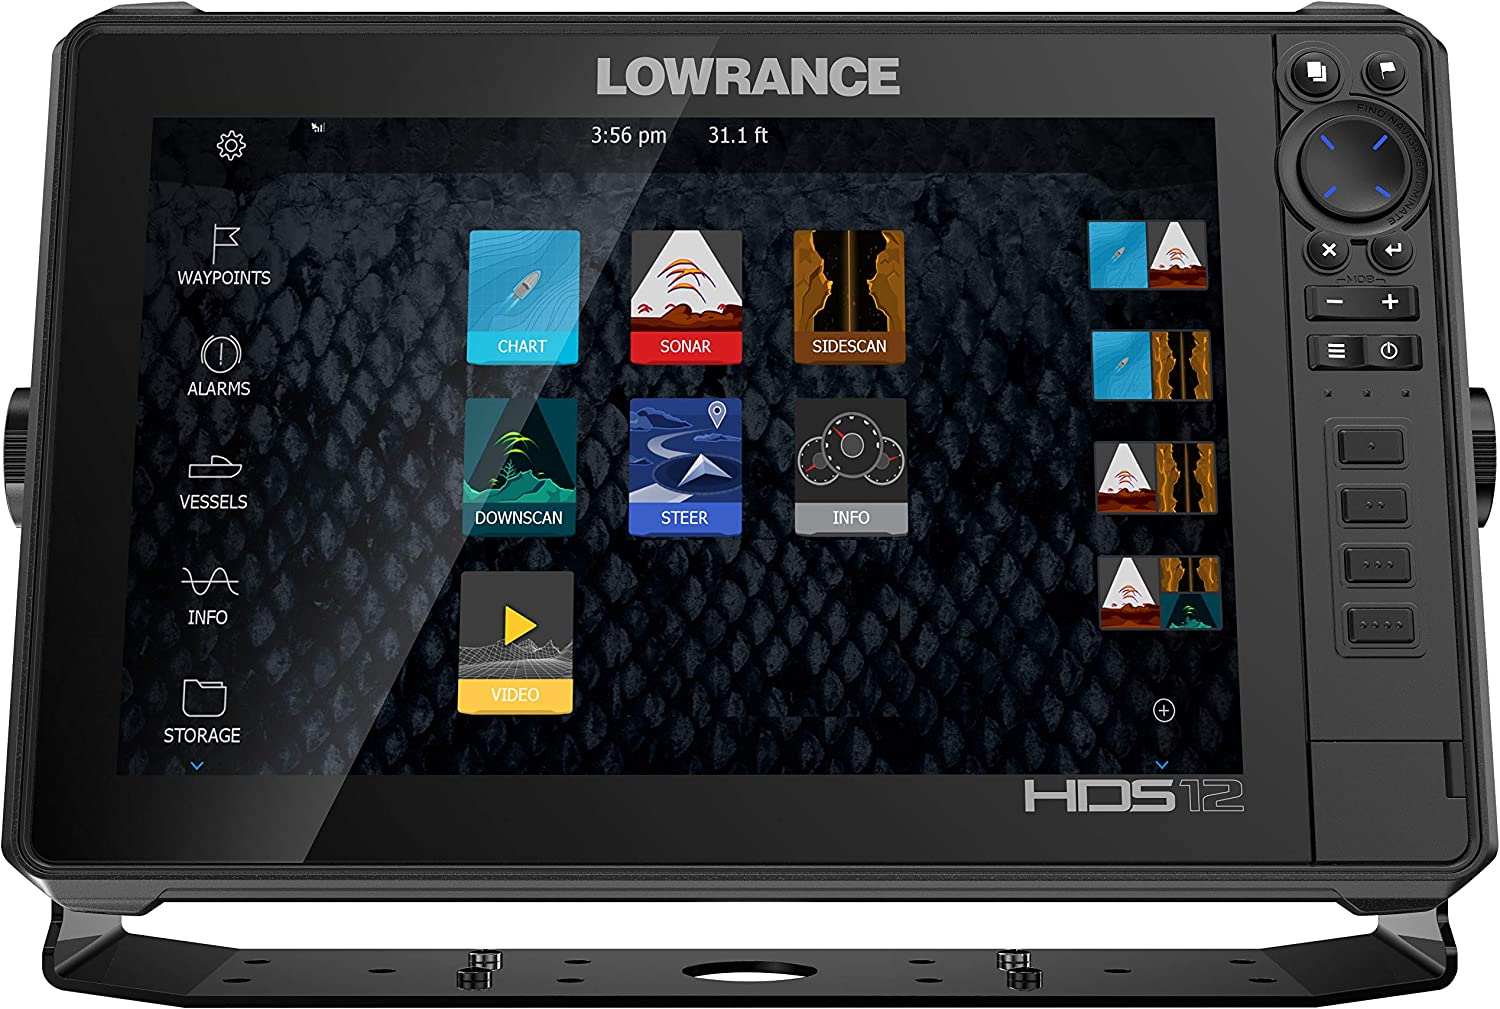 Lowrance HDS-12 Live with Active Imaging 3-in-1 Transom Mount Transducer C-MAP Pro Chart